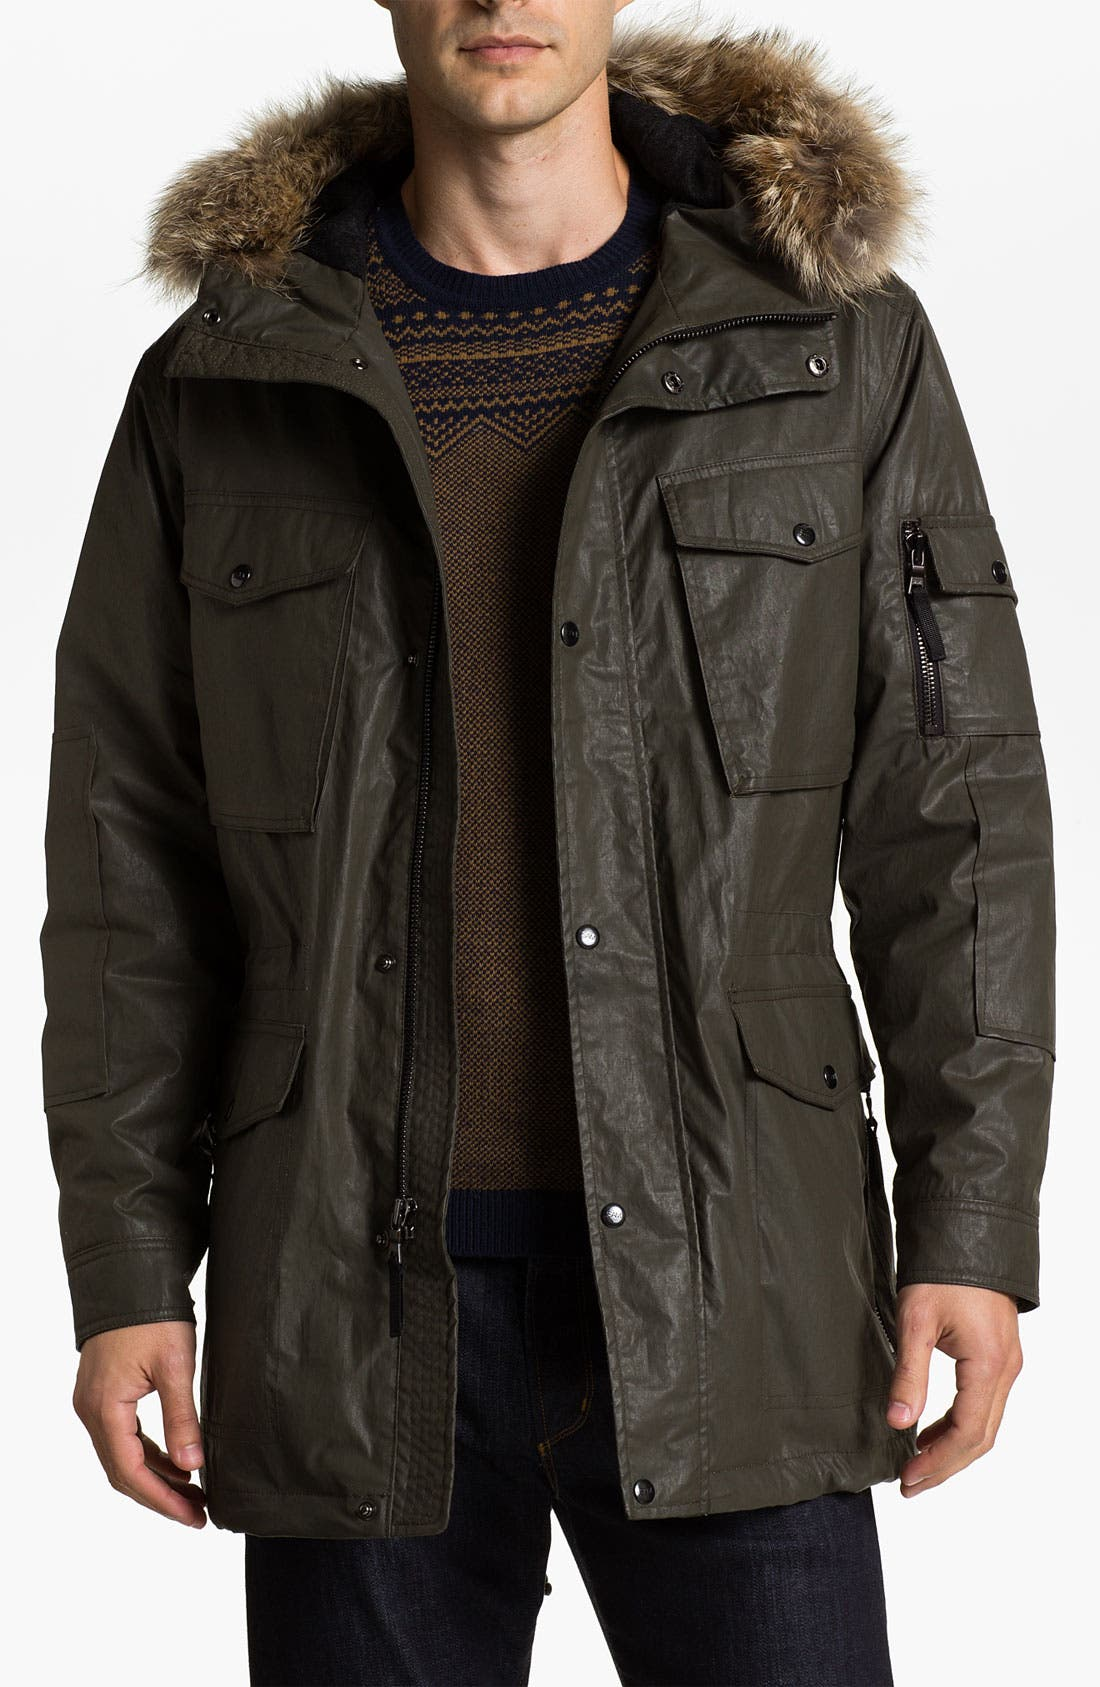 Main Image - Sam Field Jacket with Genuine Coyote Trim (Online Exclusive)